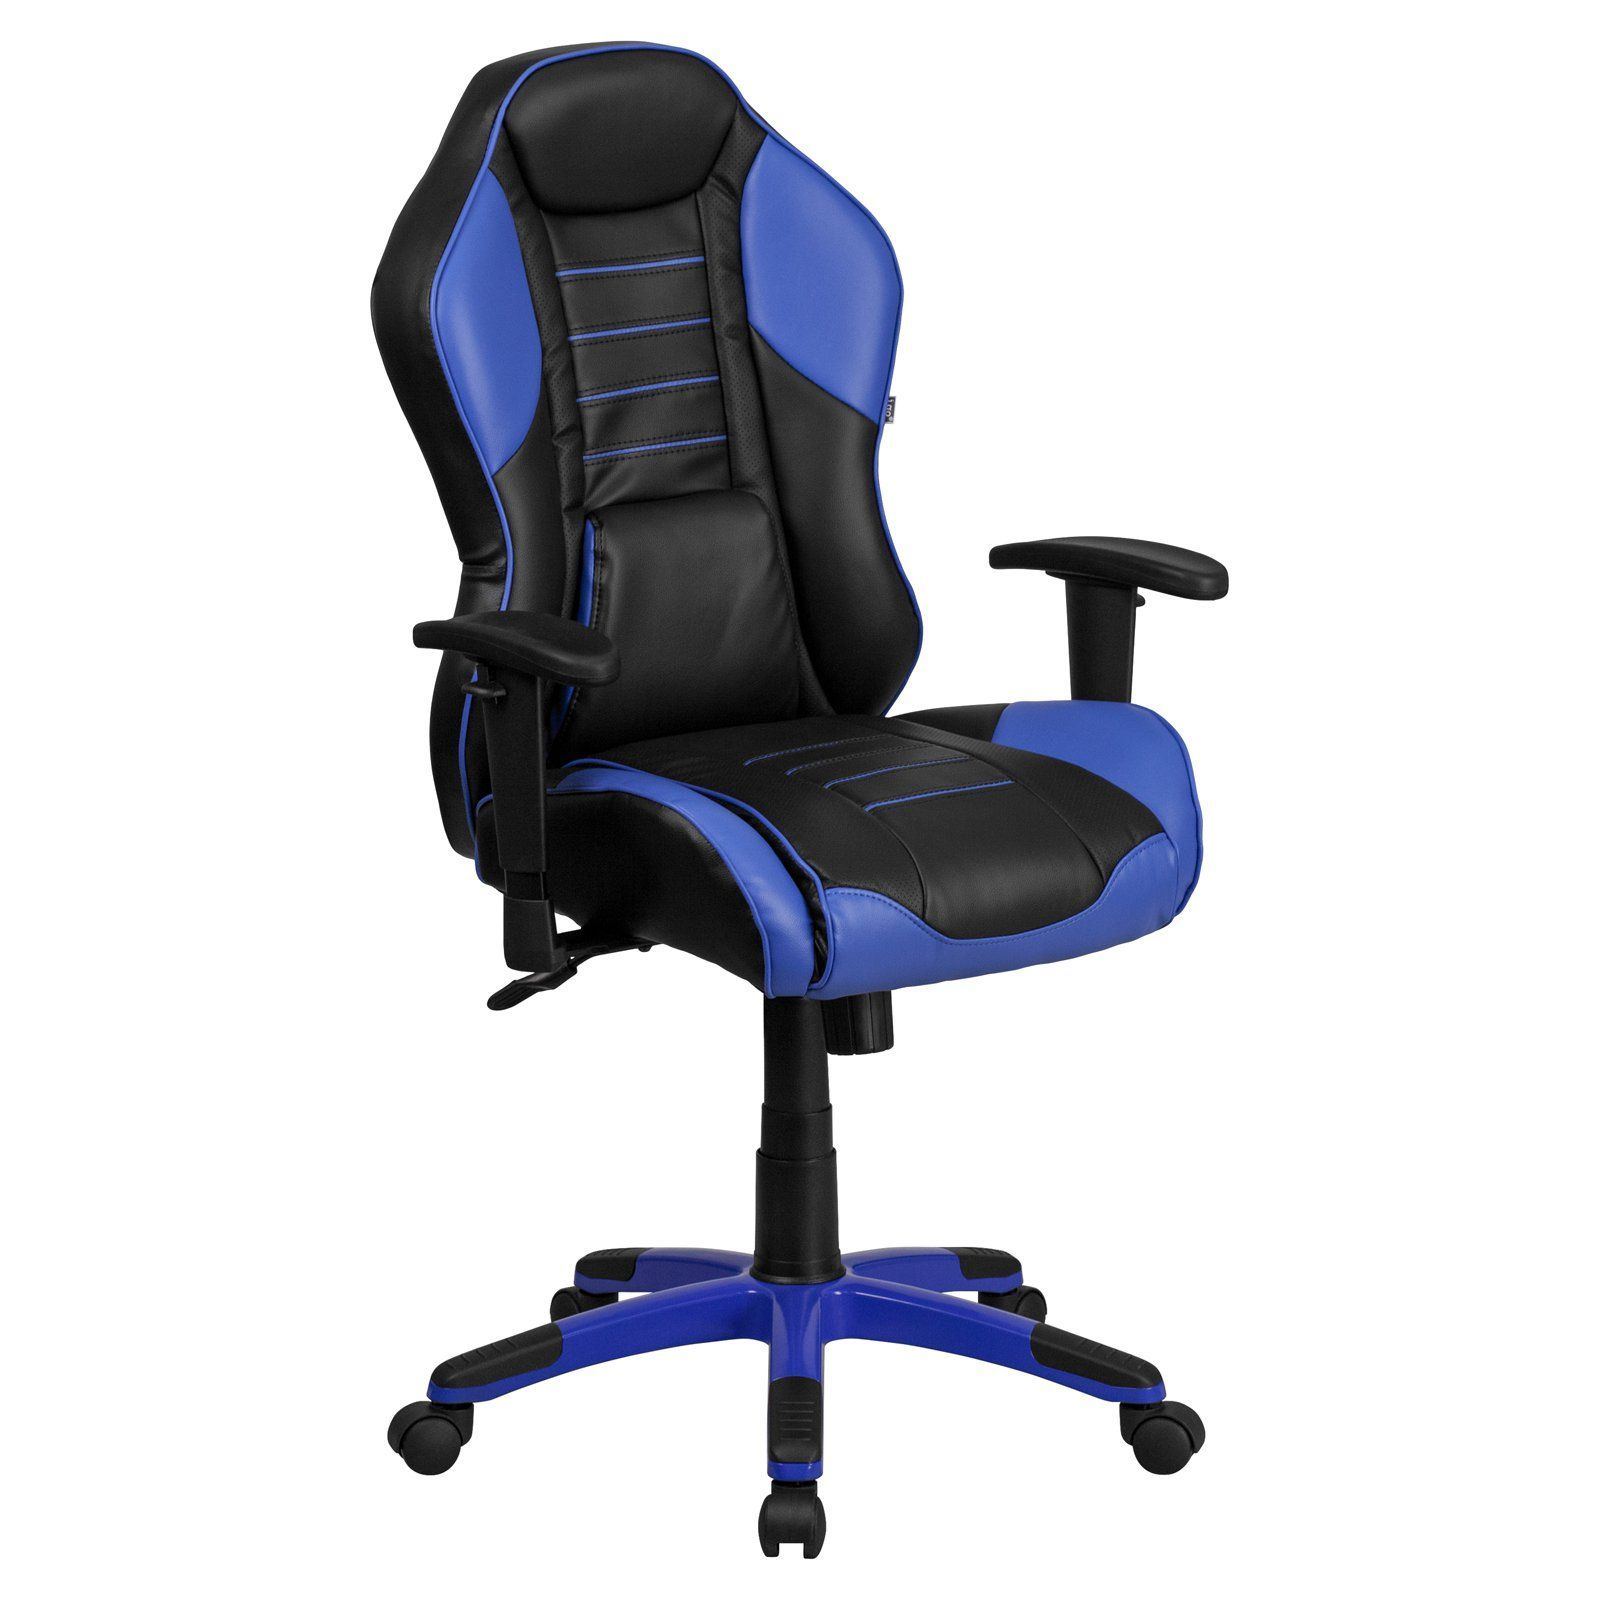 Flash furniture high back vinyl executive swivel office chair with